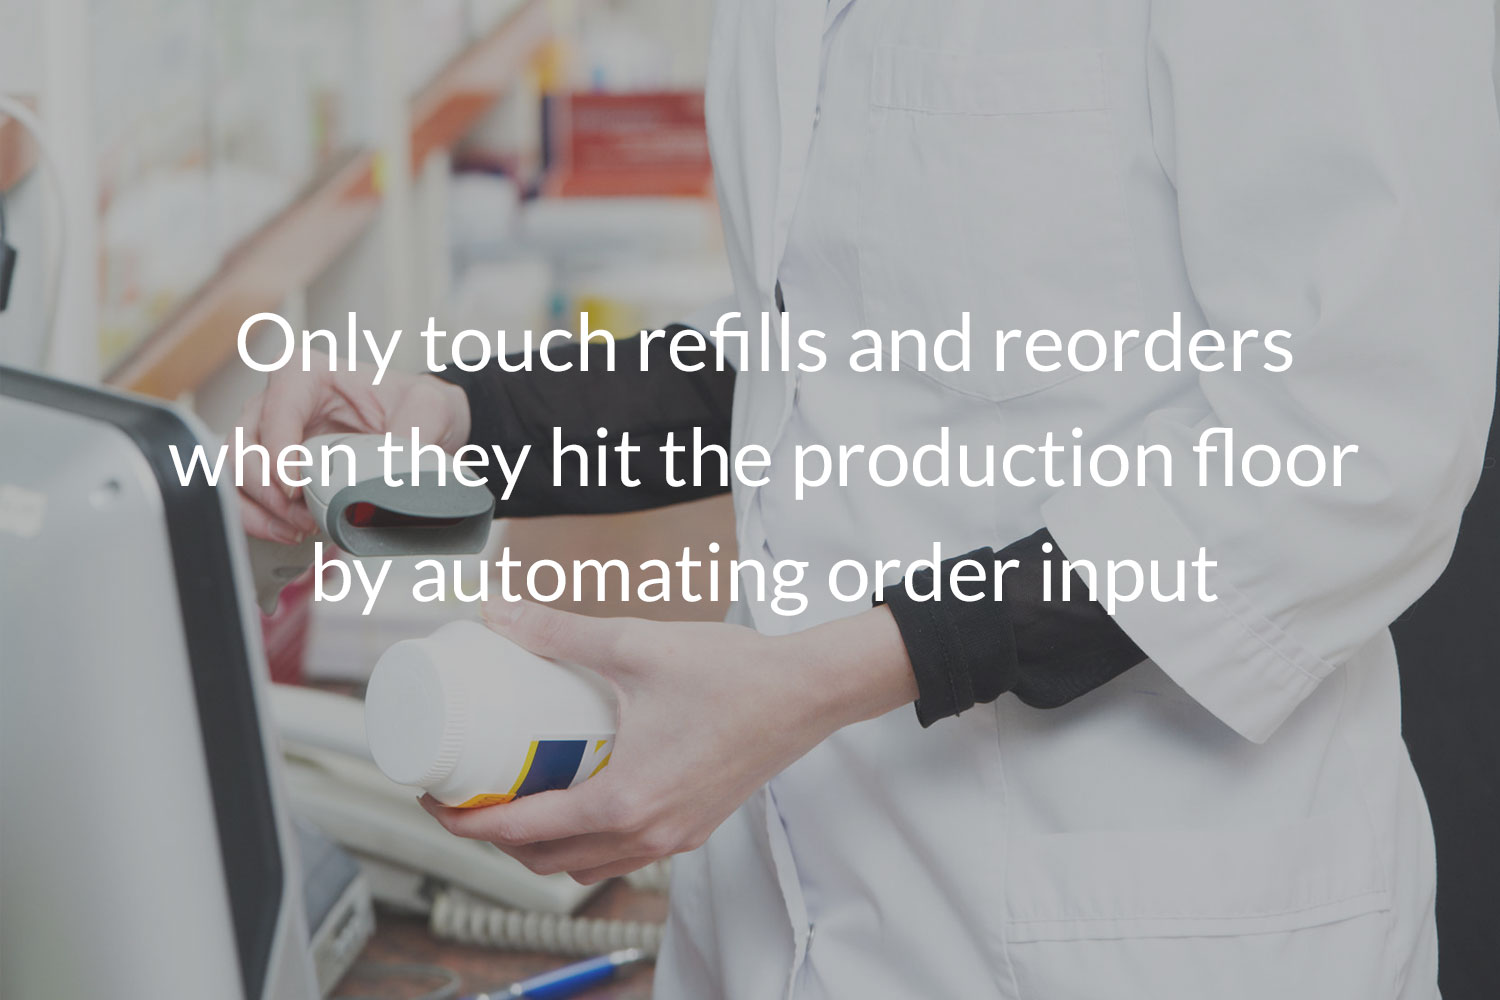 Only touch refills and reorders when they hit the production floor by automating order input